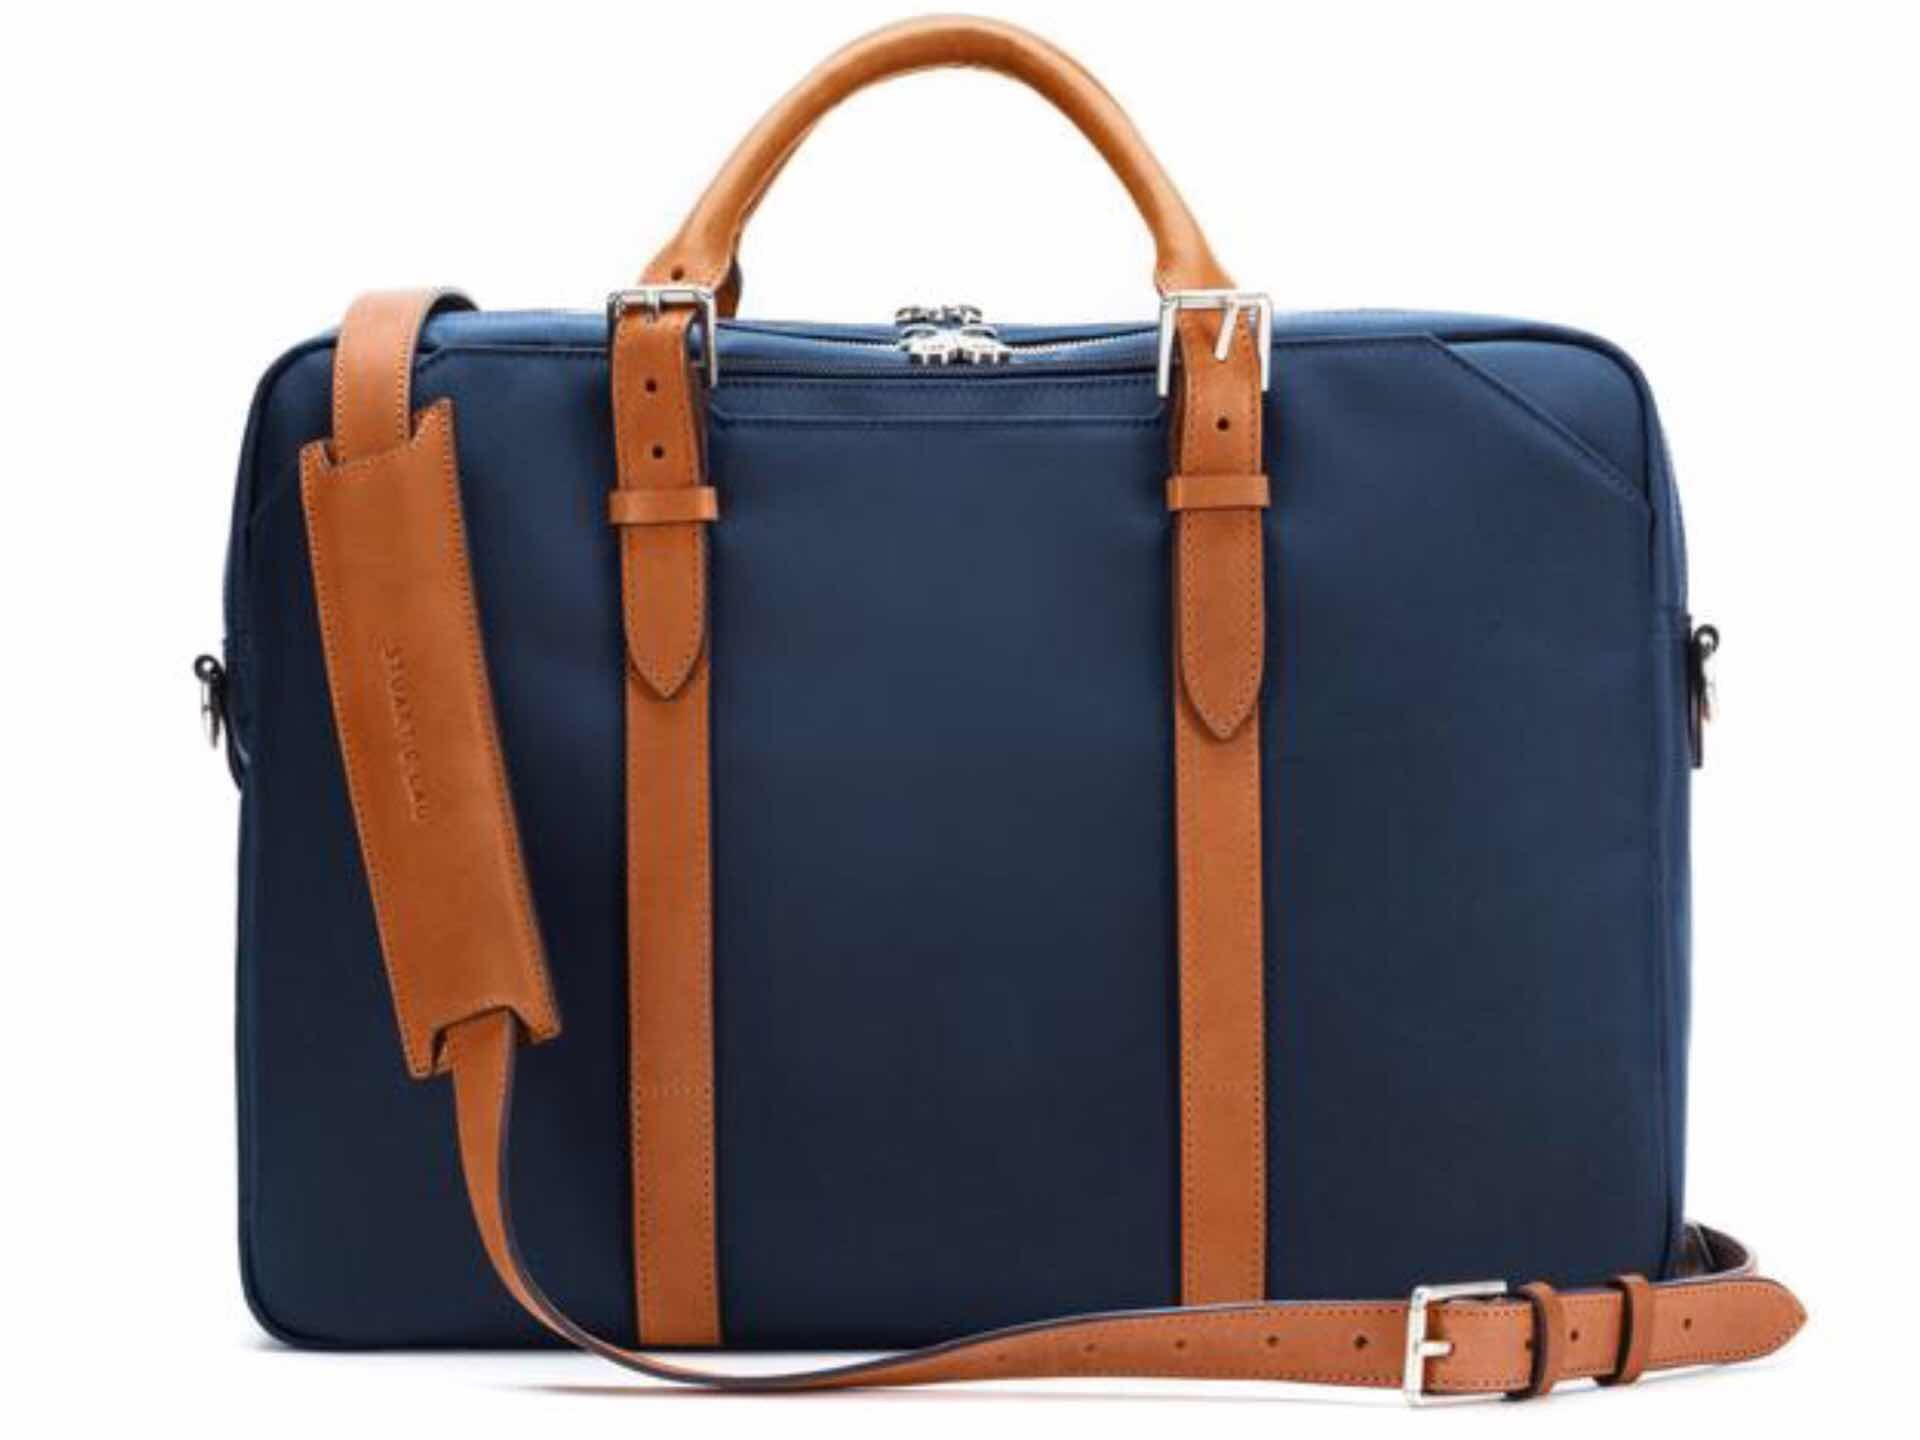 Stuart & Lau Cary Briefcase. ($295–$350 depending on size)